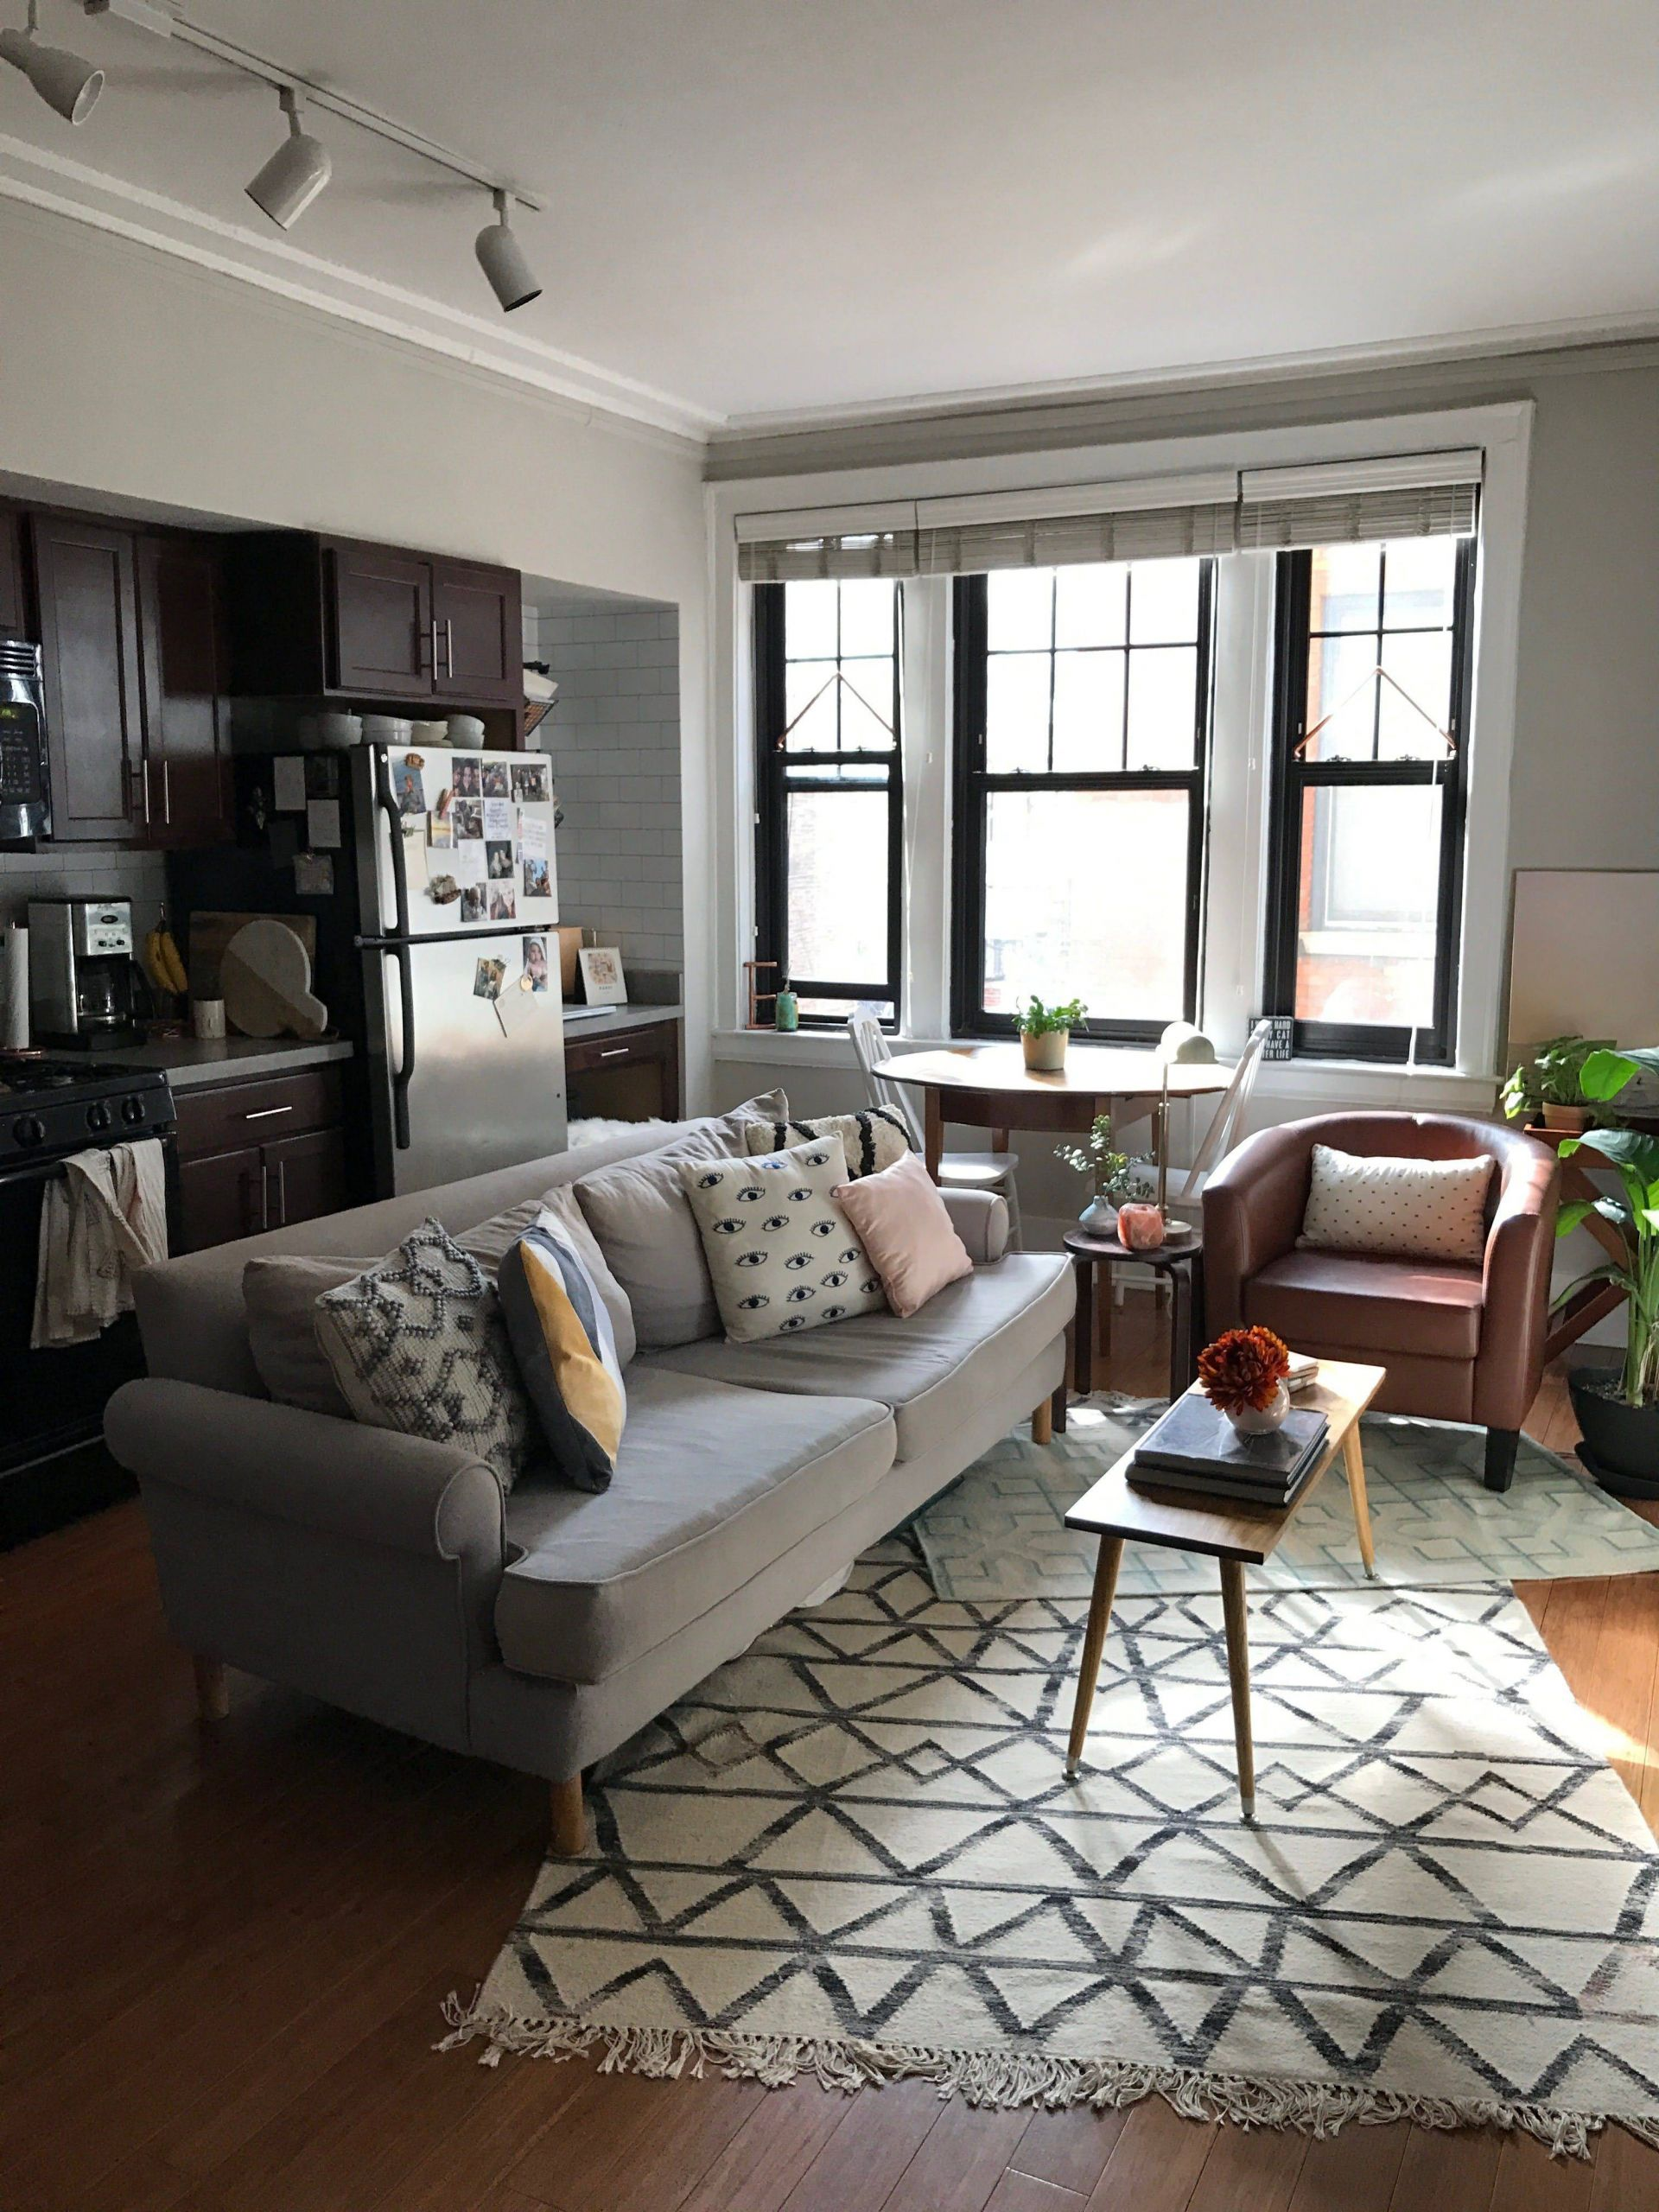 Small Apartment Designs Beautiful A Smart Layout Makes This Studio Feel Big and Bright